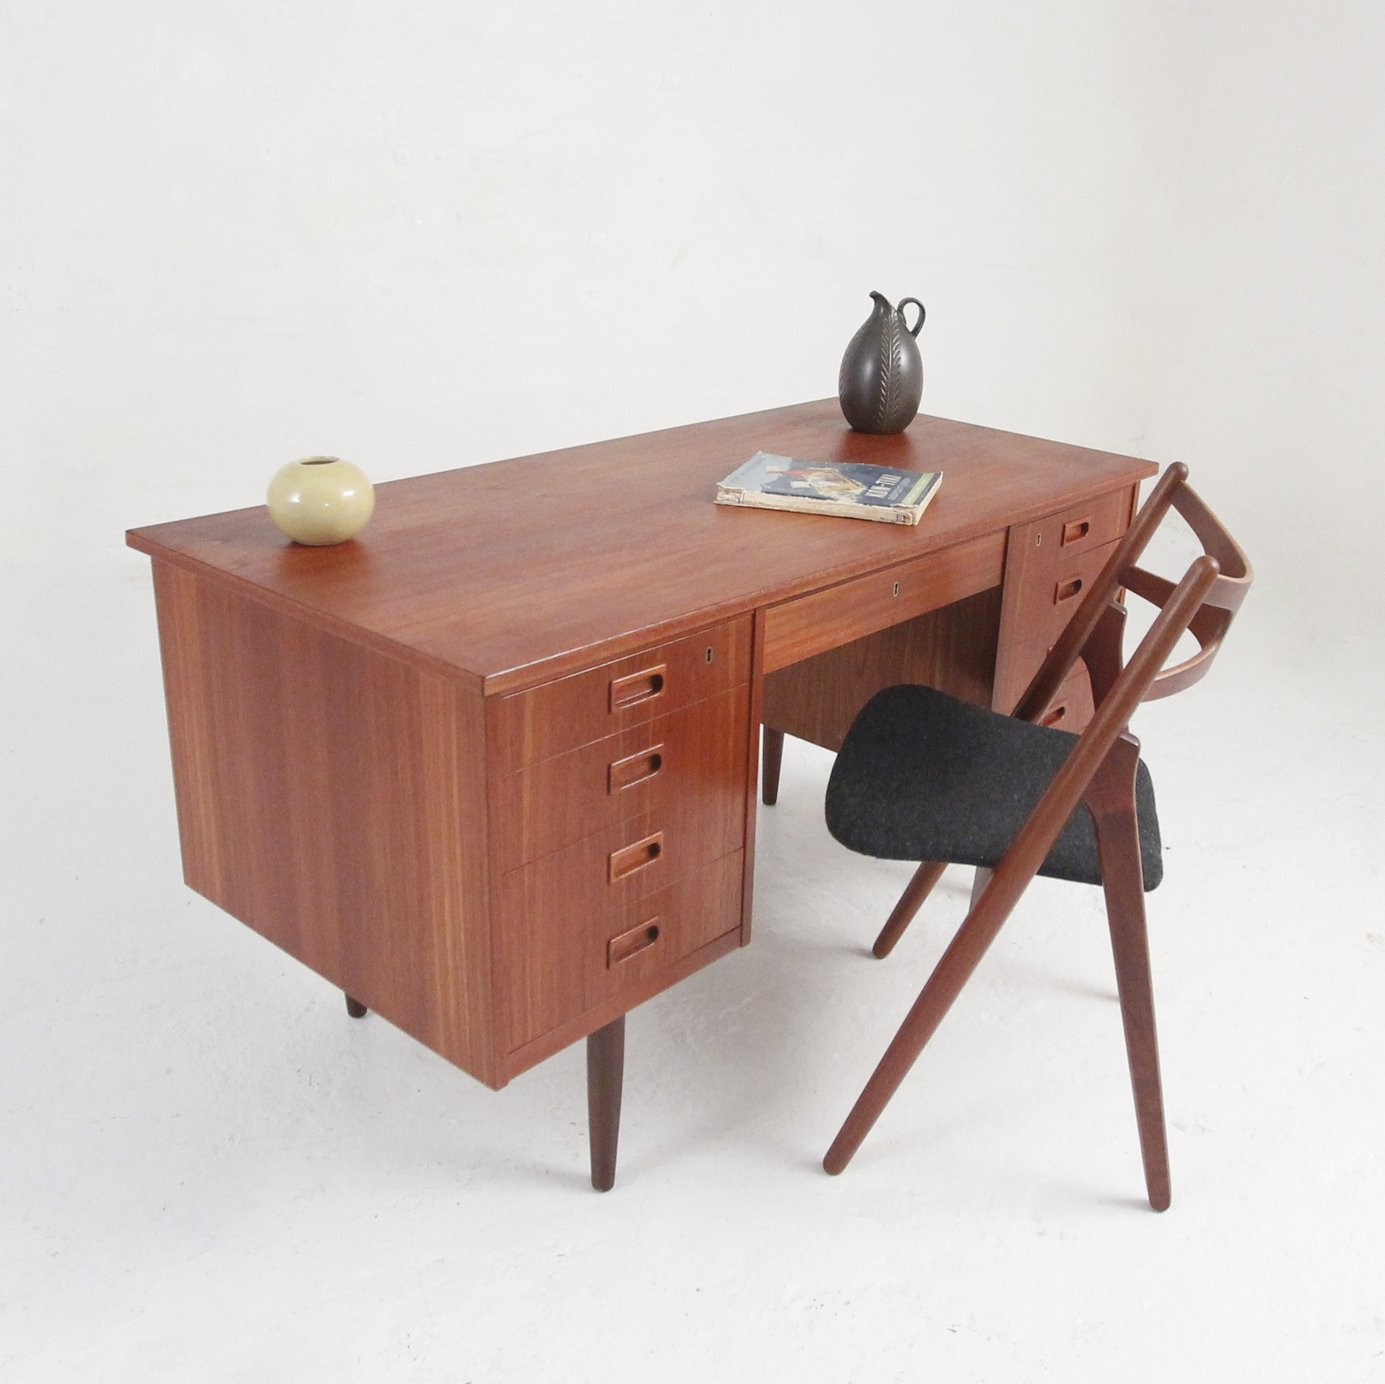 Danish Mid Century Teak Desk With 2 X 4 Drawers A Large Center